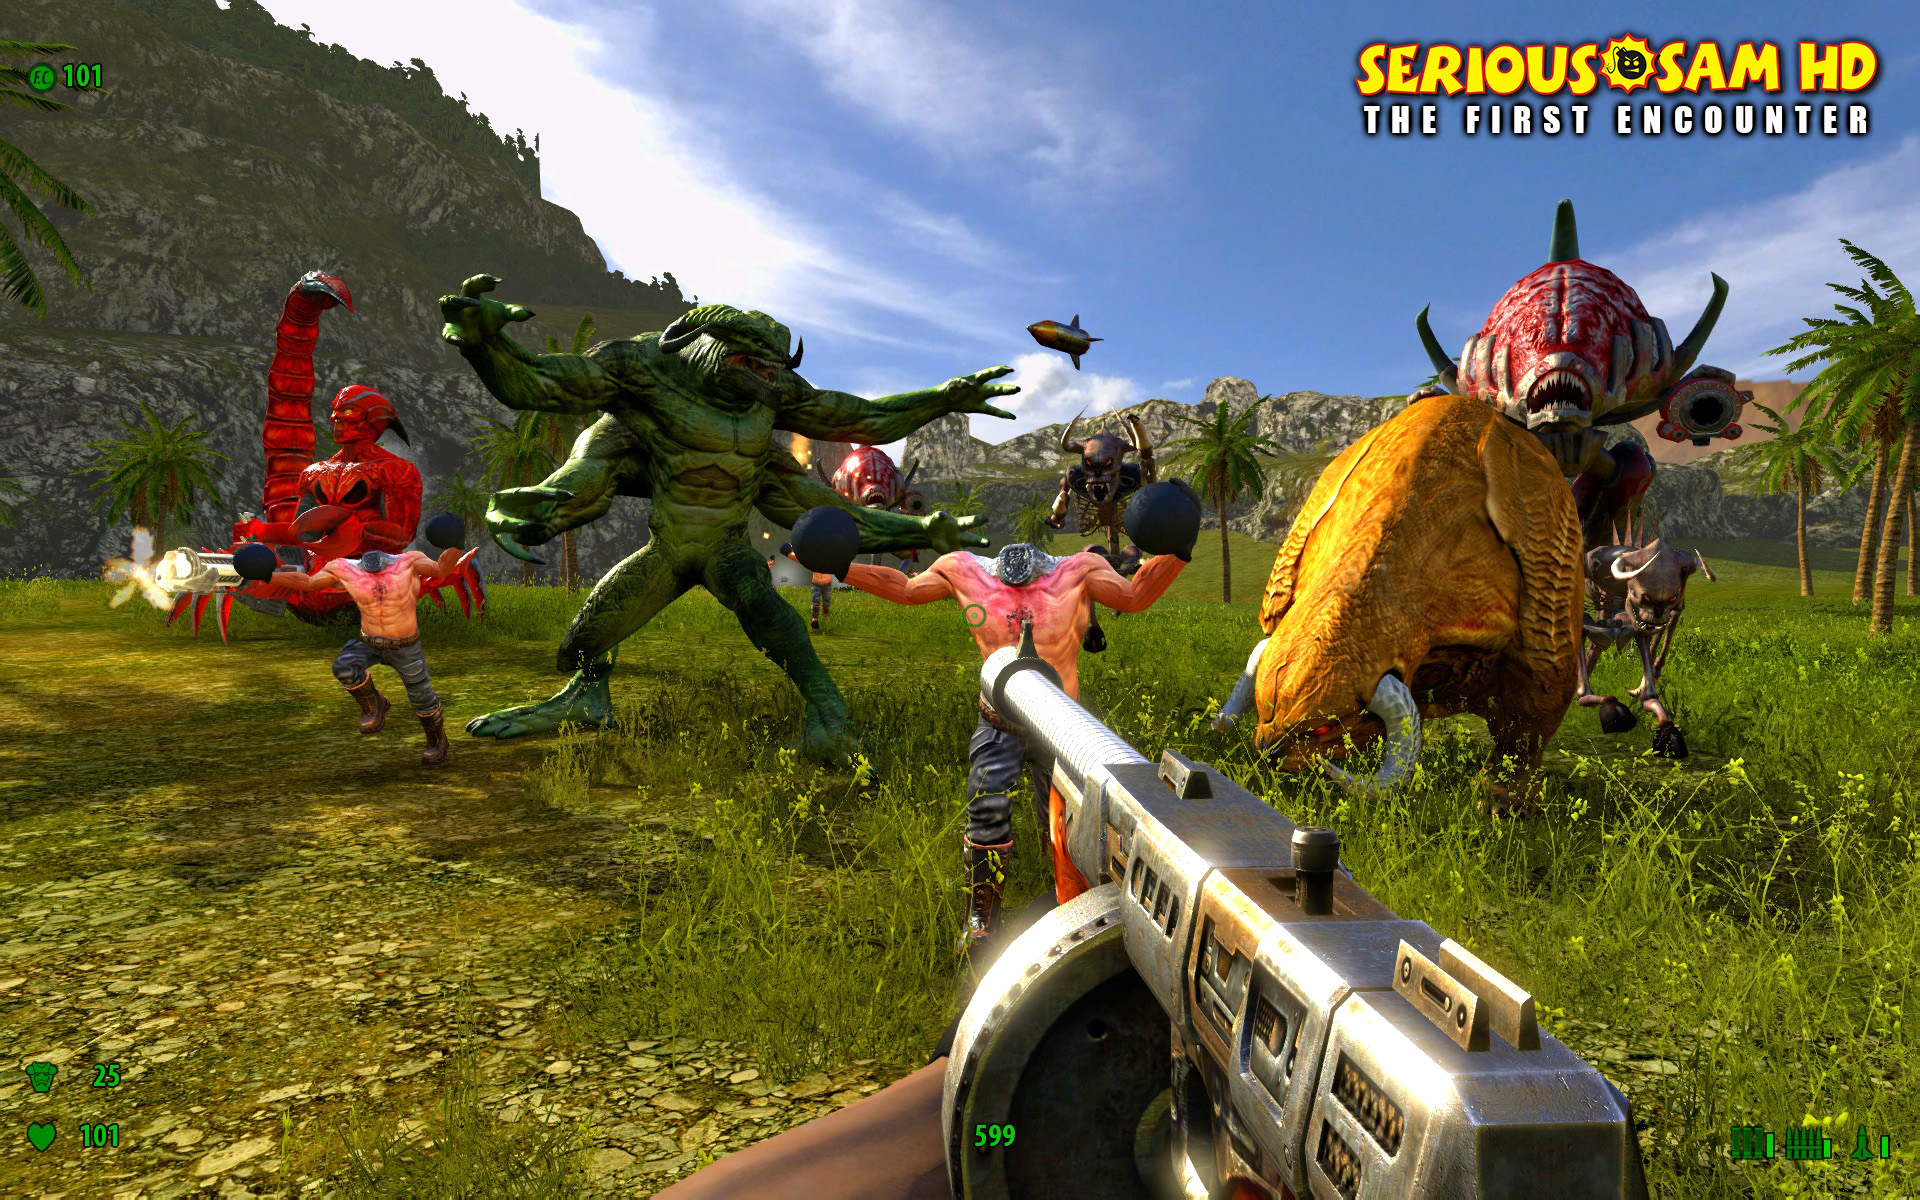 Steam Workshop :: Best Mods For Serious Sam Fusion